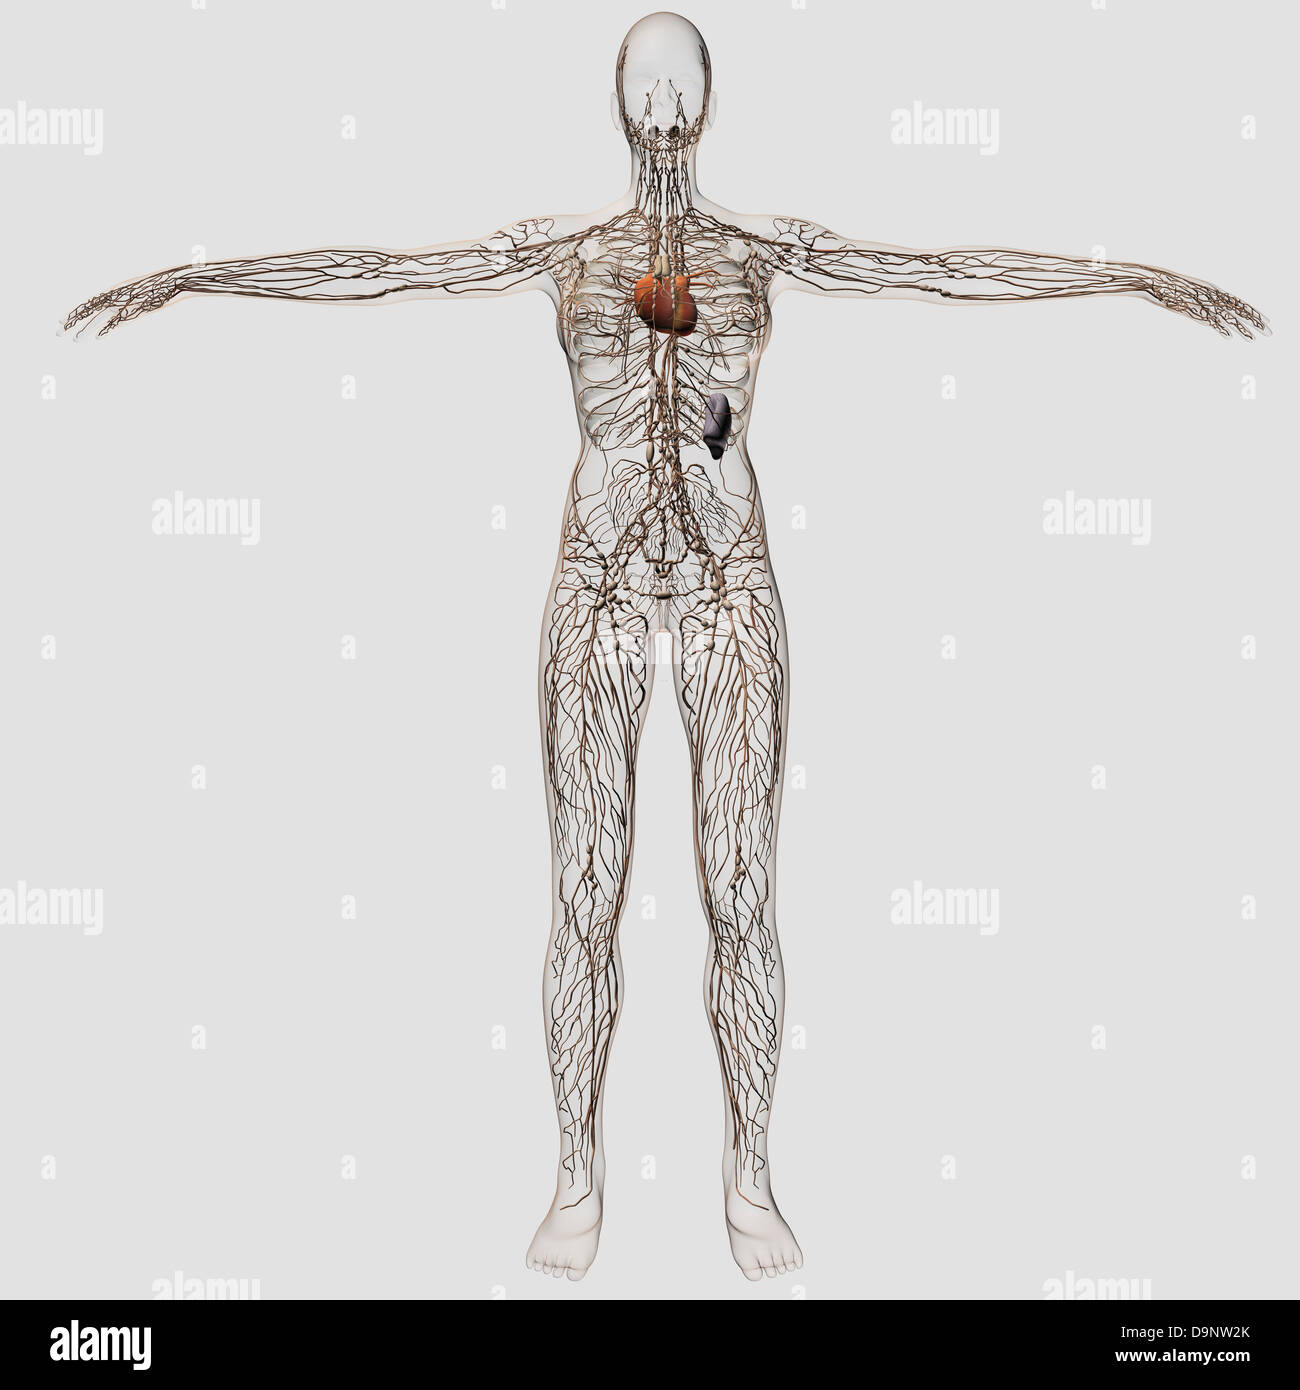 Thoracic Duct Stock Photos Thoracic Duct Stock Images Alamy